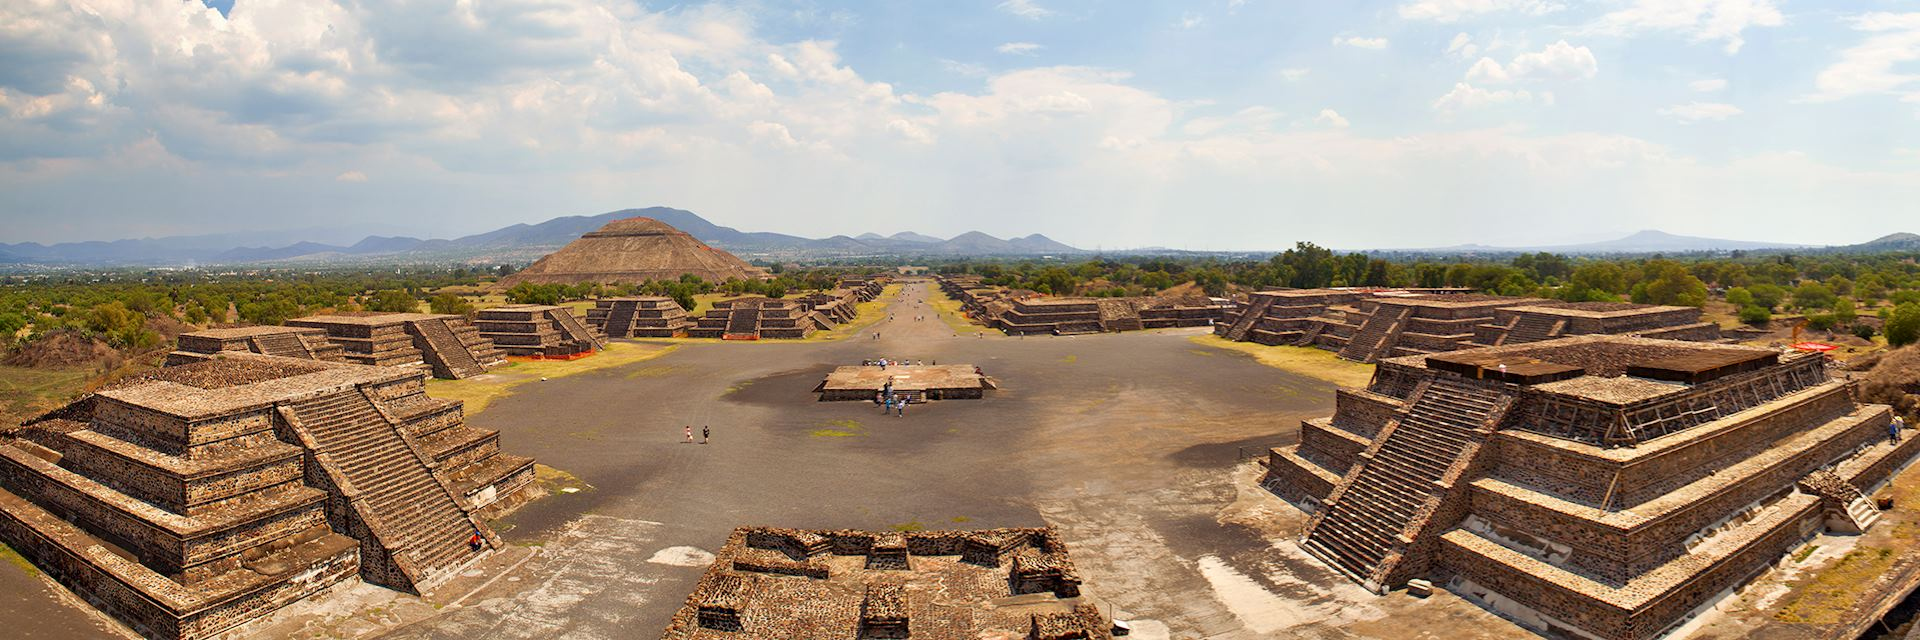 Teotihuacan Mayan ruins in Mexico